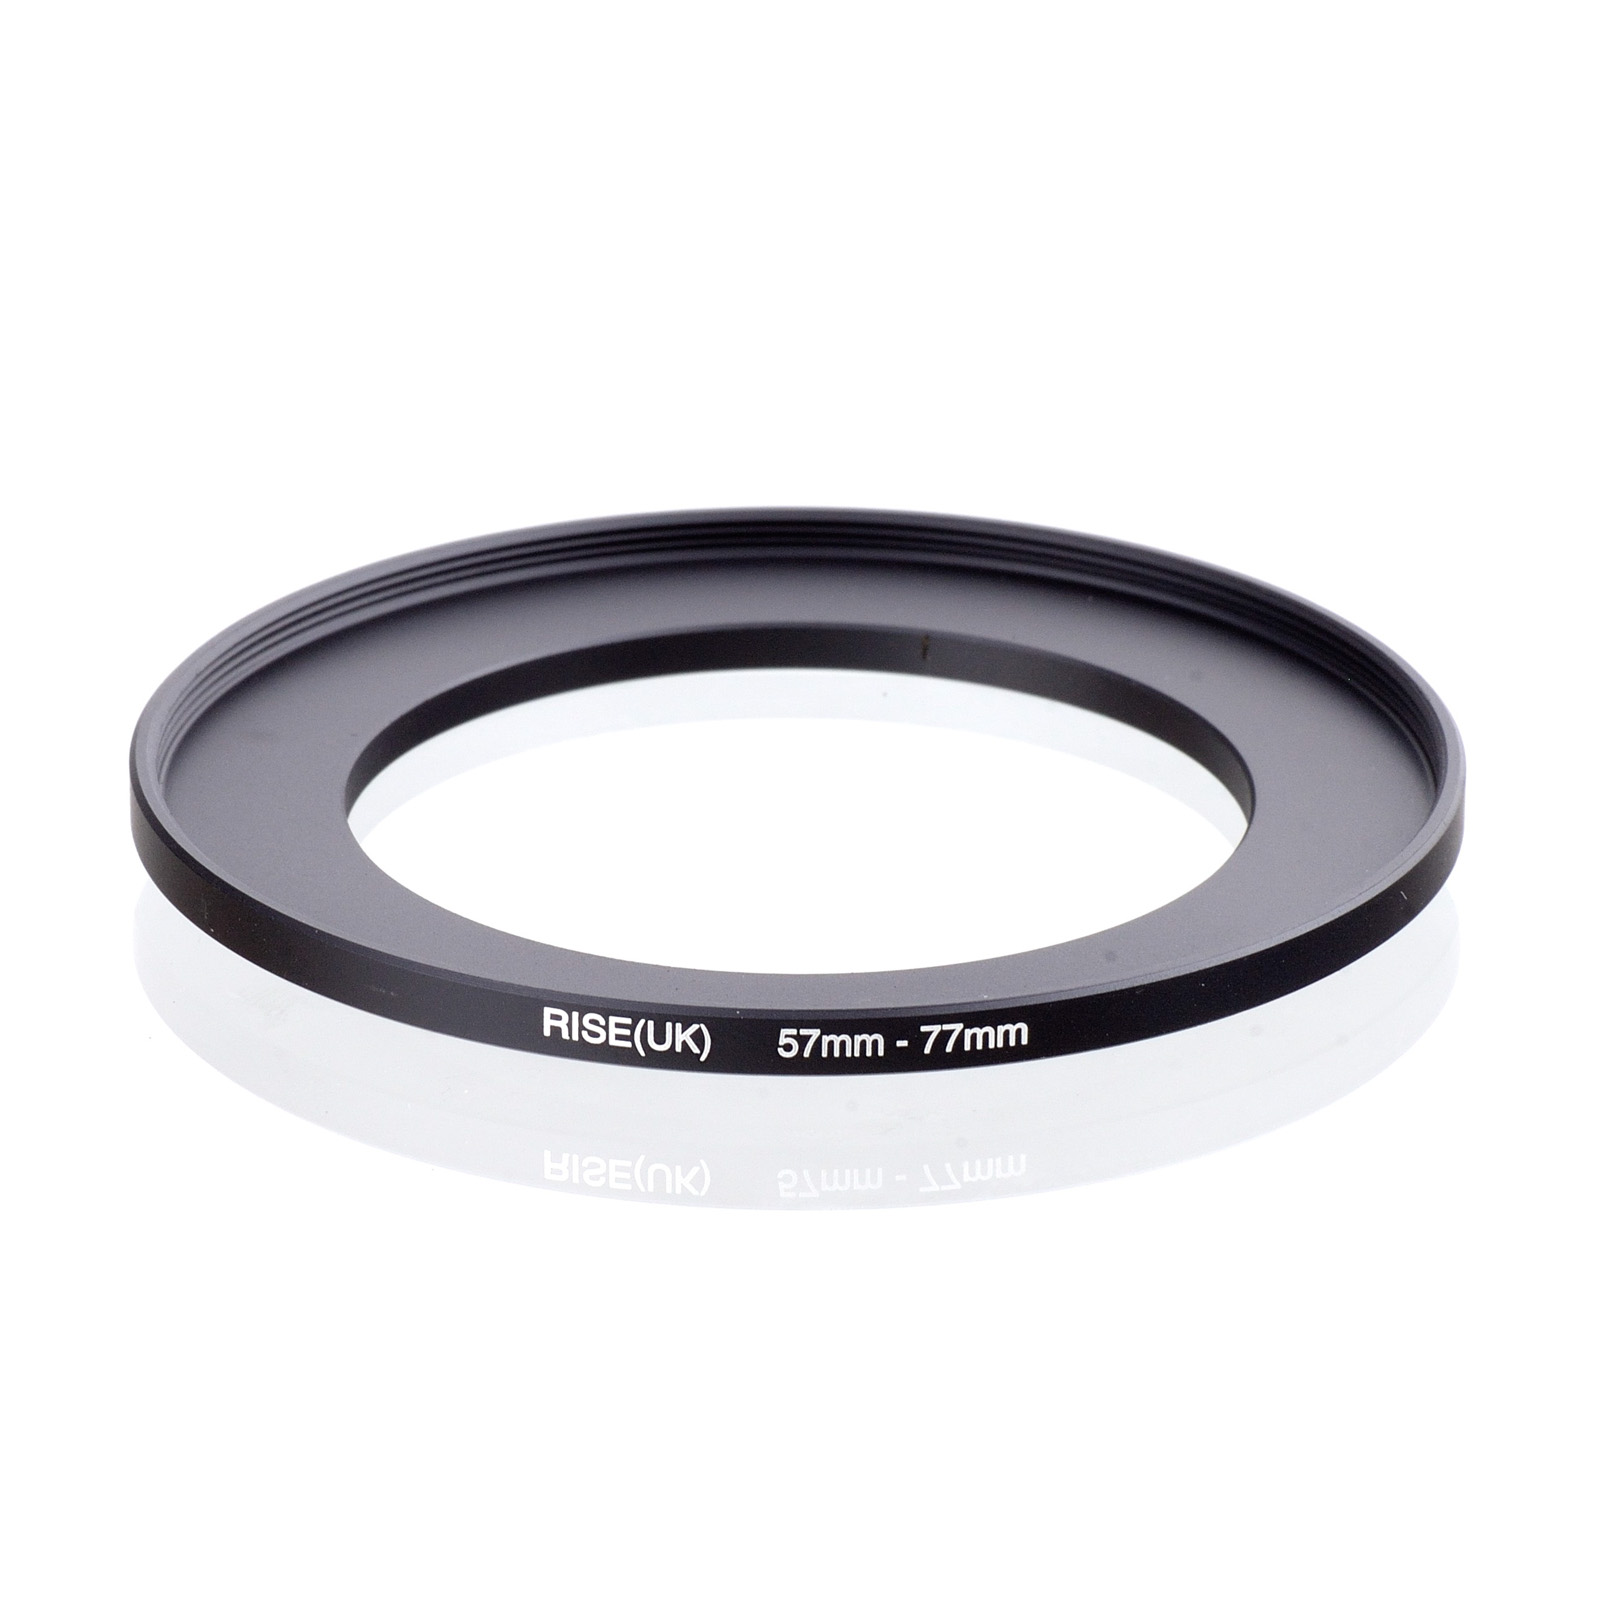 RISE(UK) 57mm-77mm 57-77 Mm 57 To 77 Step Up Filter Ring Adapter